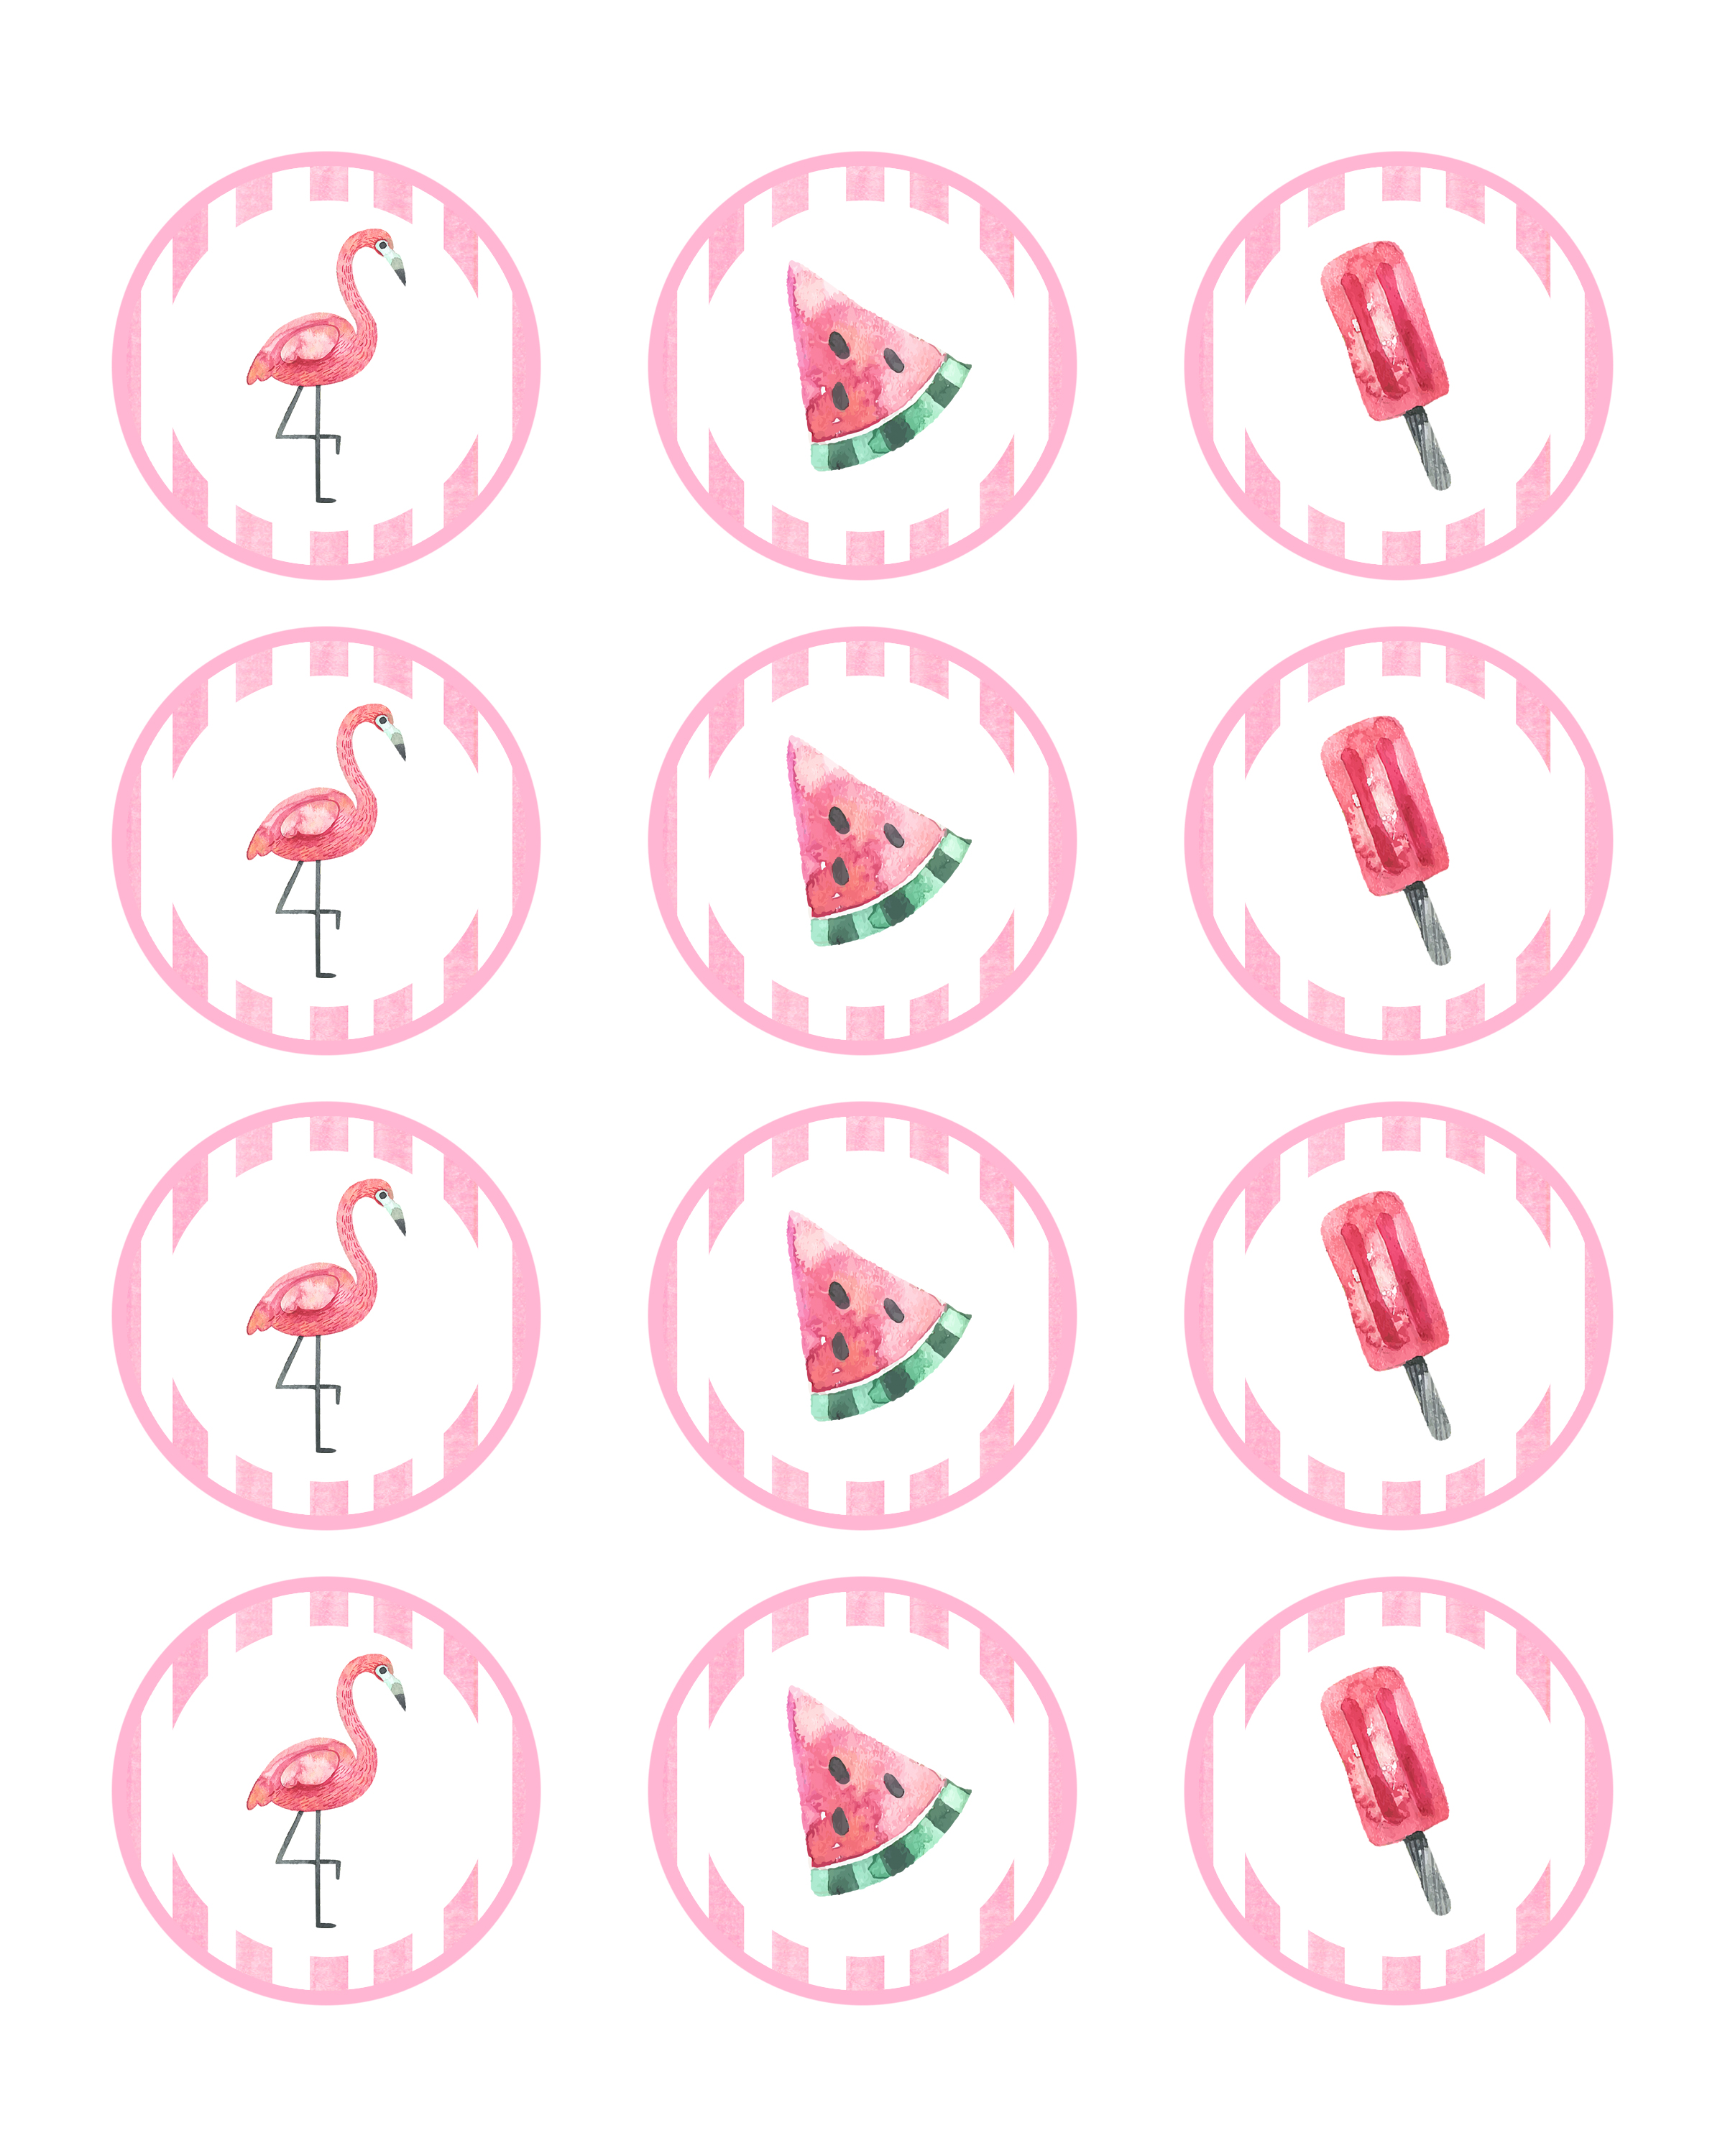 photograph relating to Flamingo Printable known as No cost Printable Flamingo Celebration Pack - The Cottage Marketplace